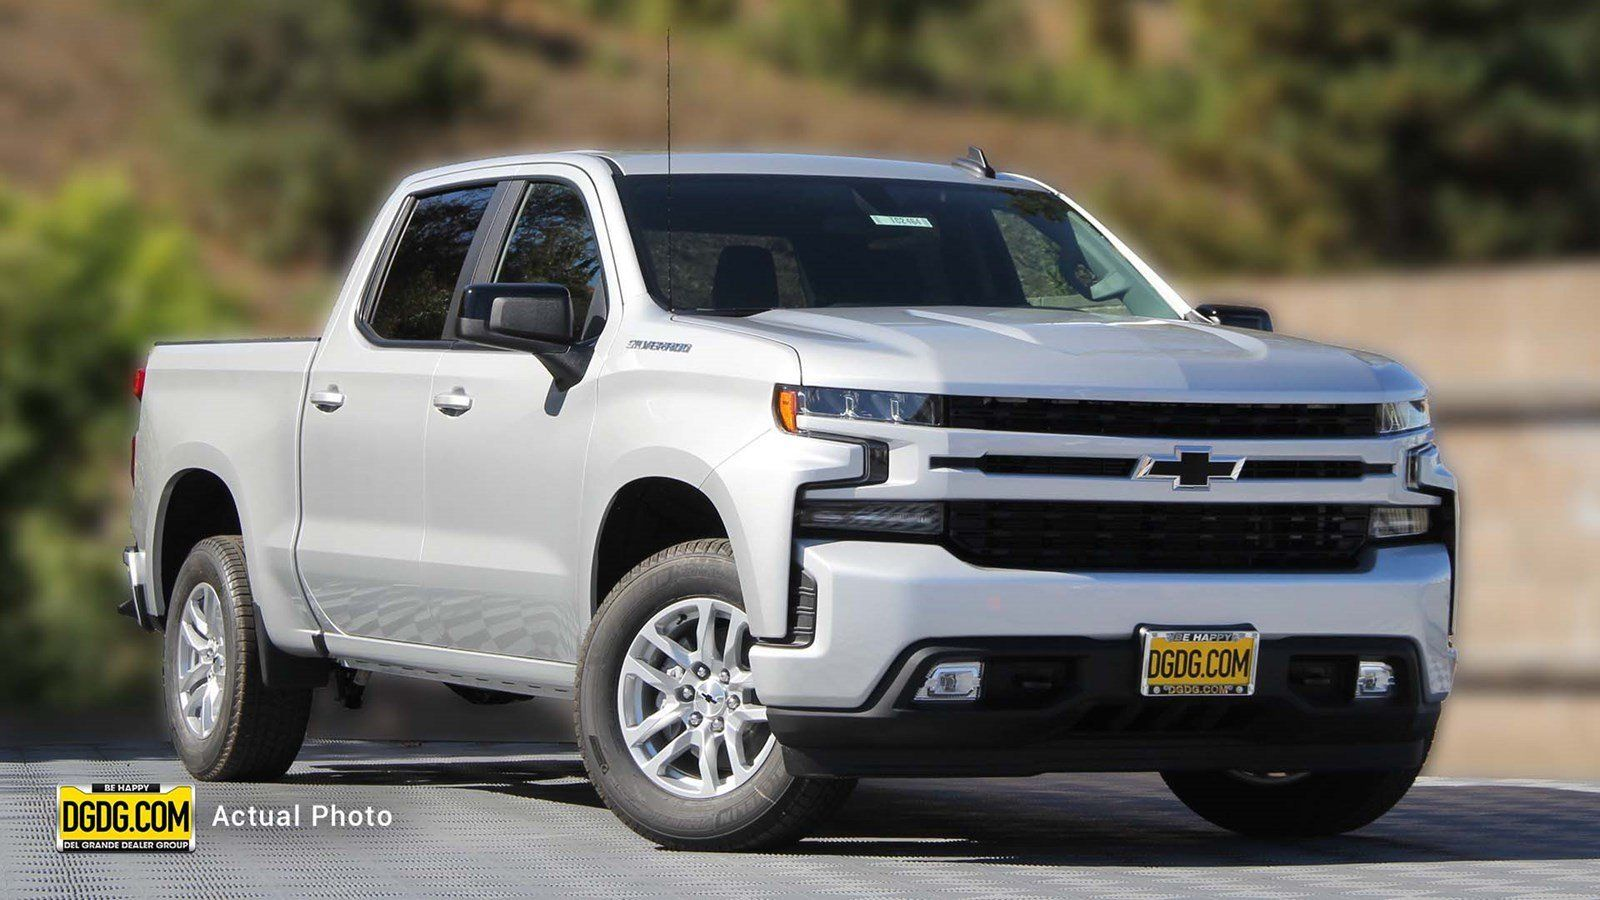 The 2019 Chevy Silverado Is A Good Full Size Pickup Truck It Boasts A Best In Class Tow Rating Of 13 400 Pounds A Custom Silverado Fuel Economy Pickup Trucks